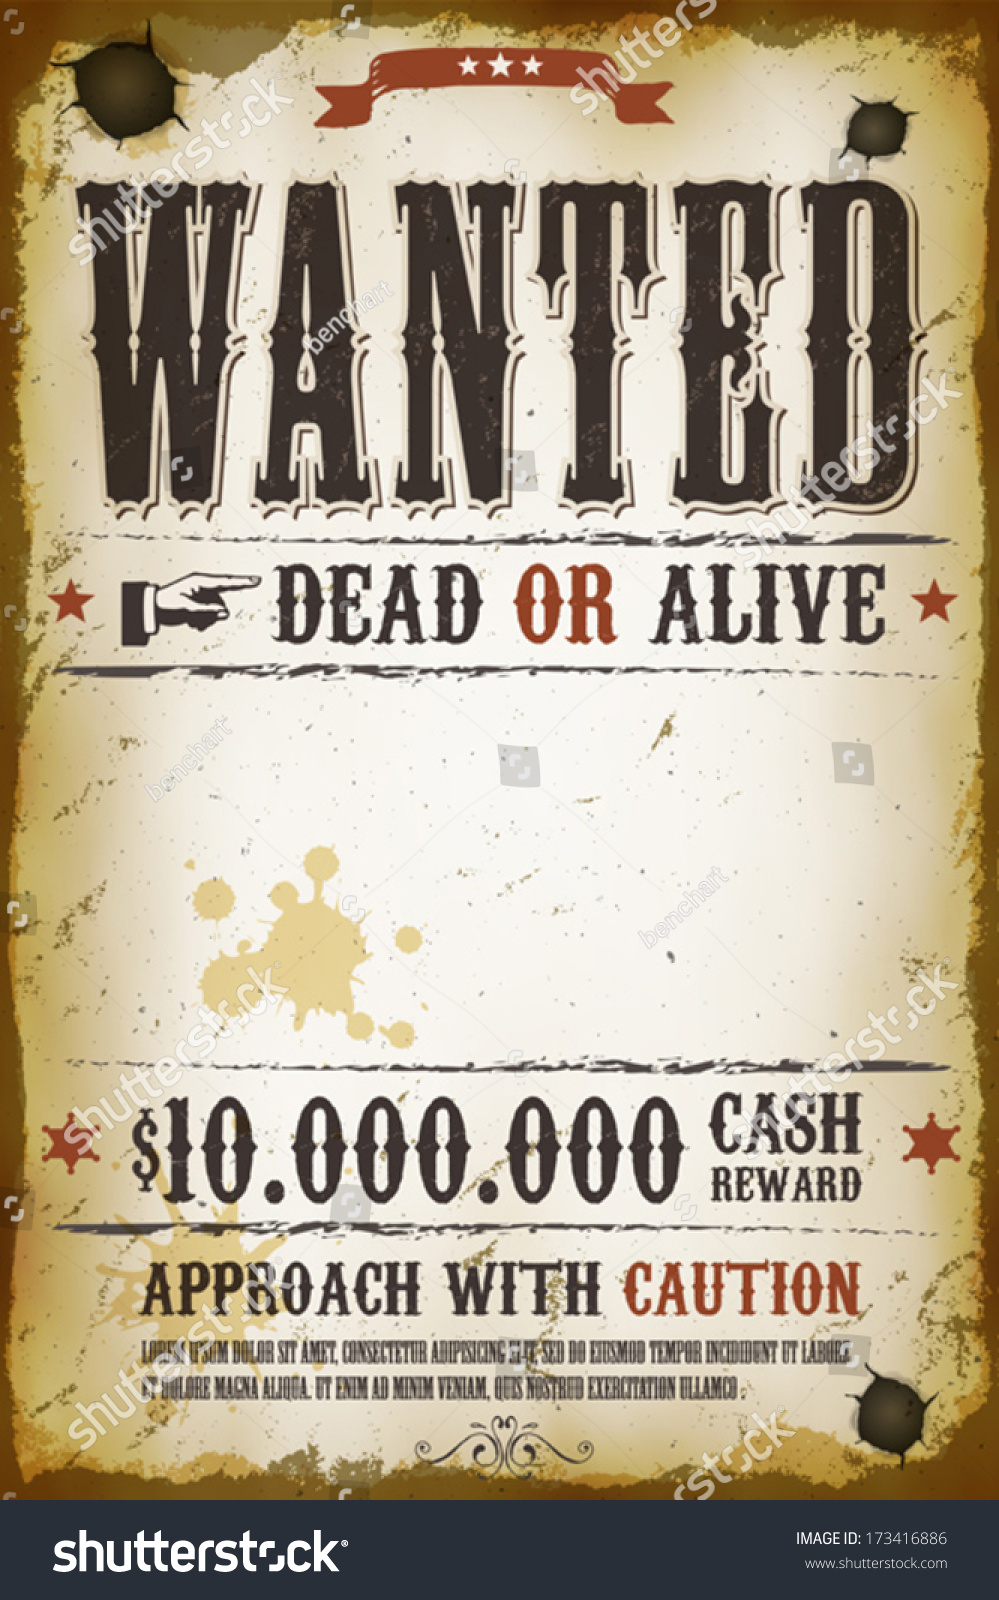 wanted vintage western poster stock vector 173416886